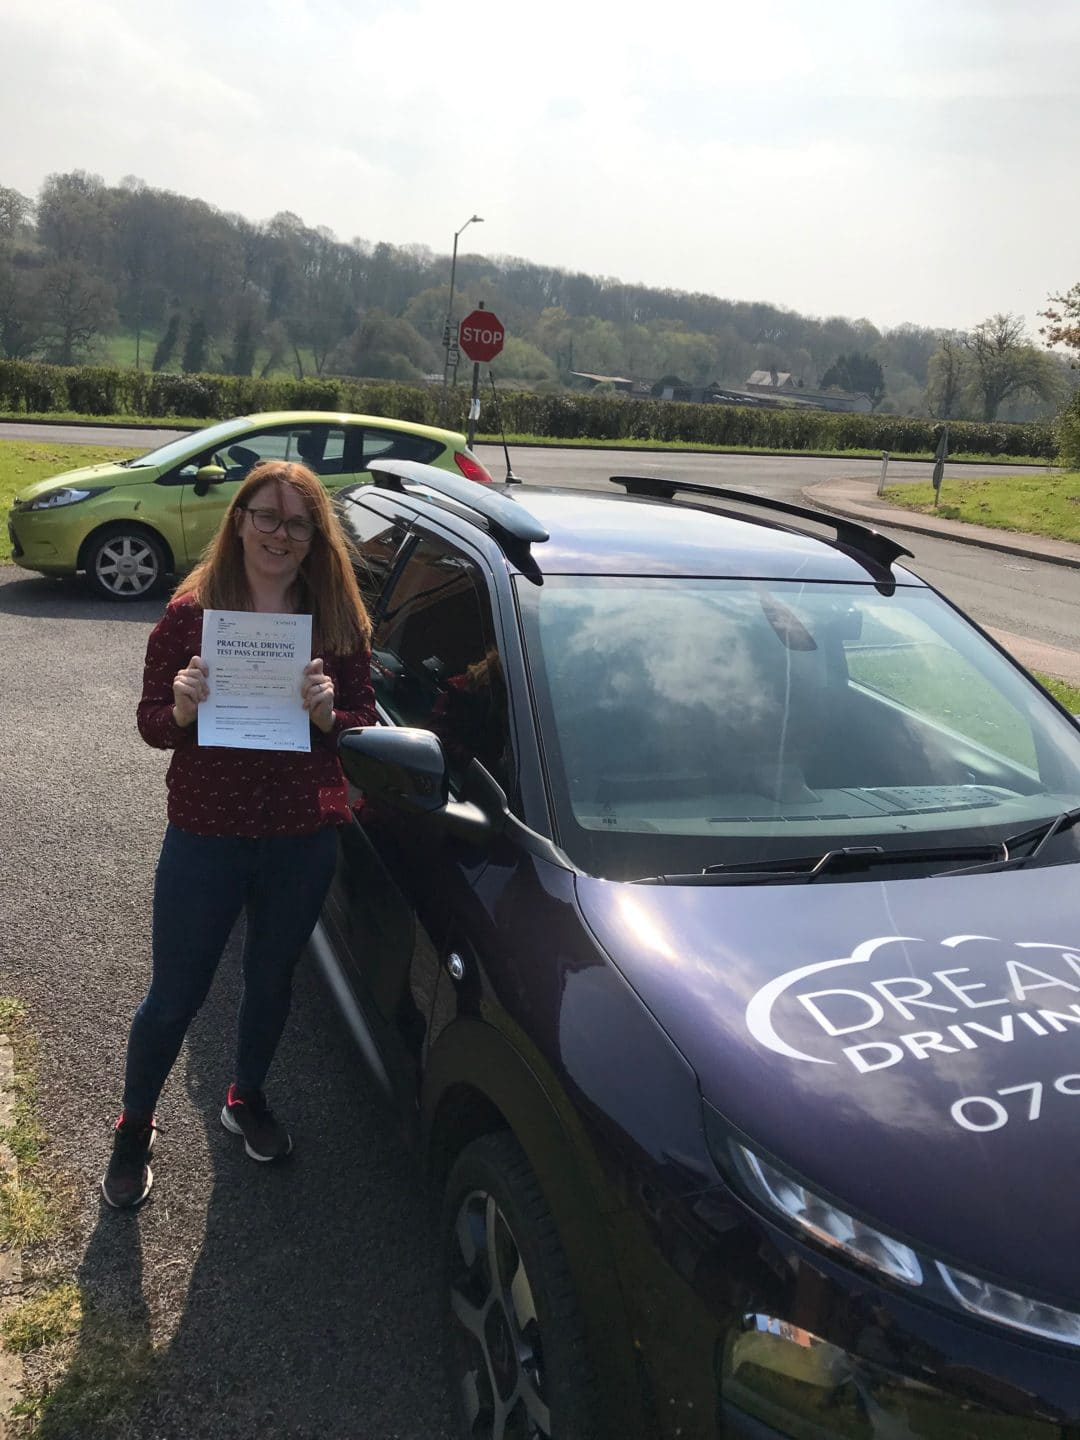 Lindsay P – Passed first time on 15th April 2019